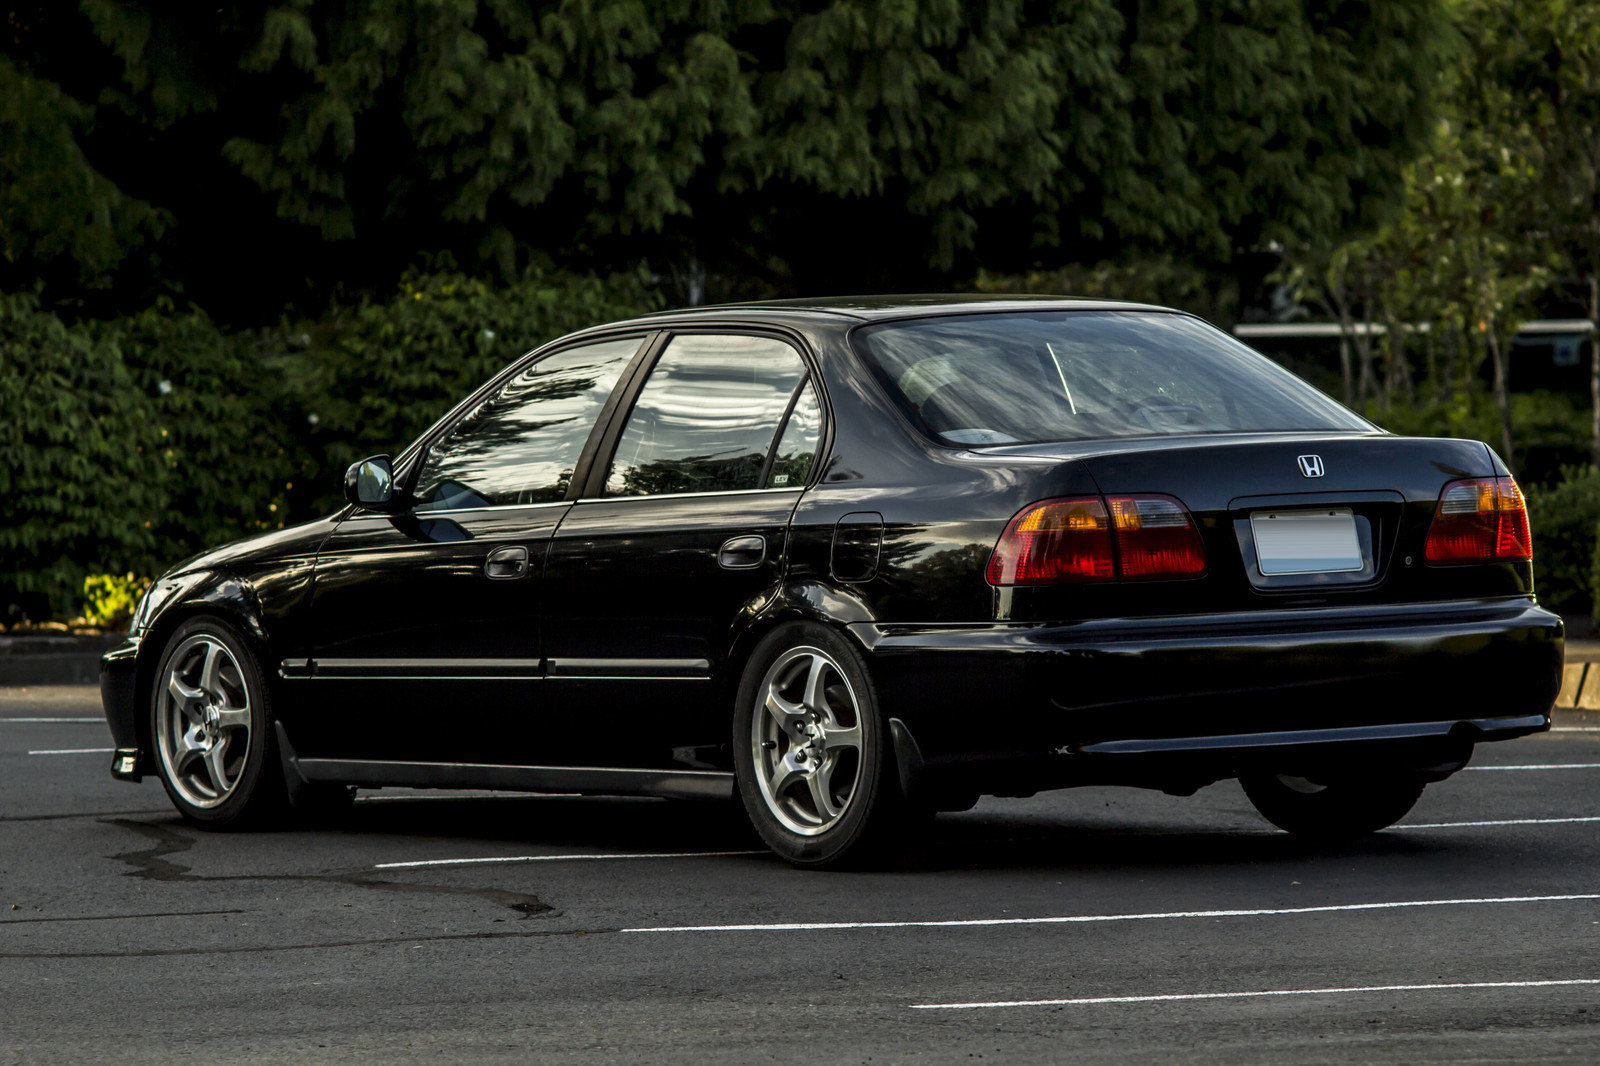 2000 Black Honda Civic LX Stock K24a2 N/A Picture, Mods, Upgrades